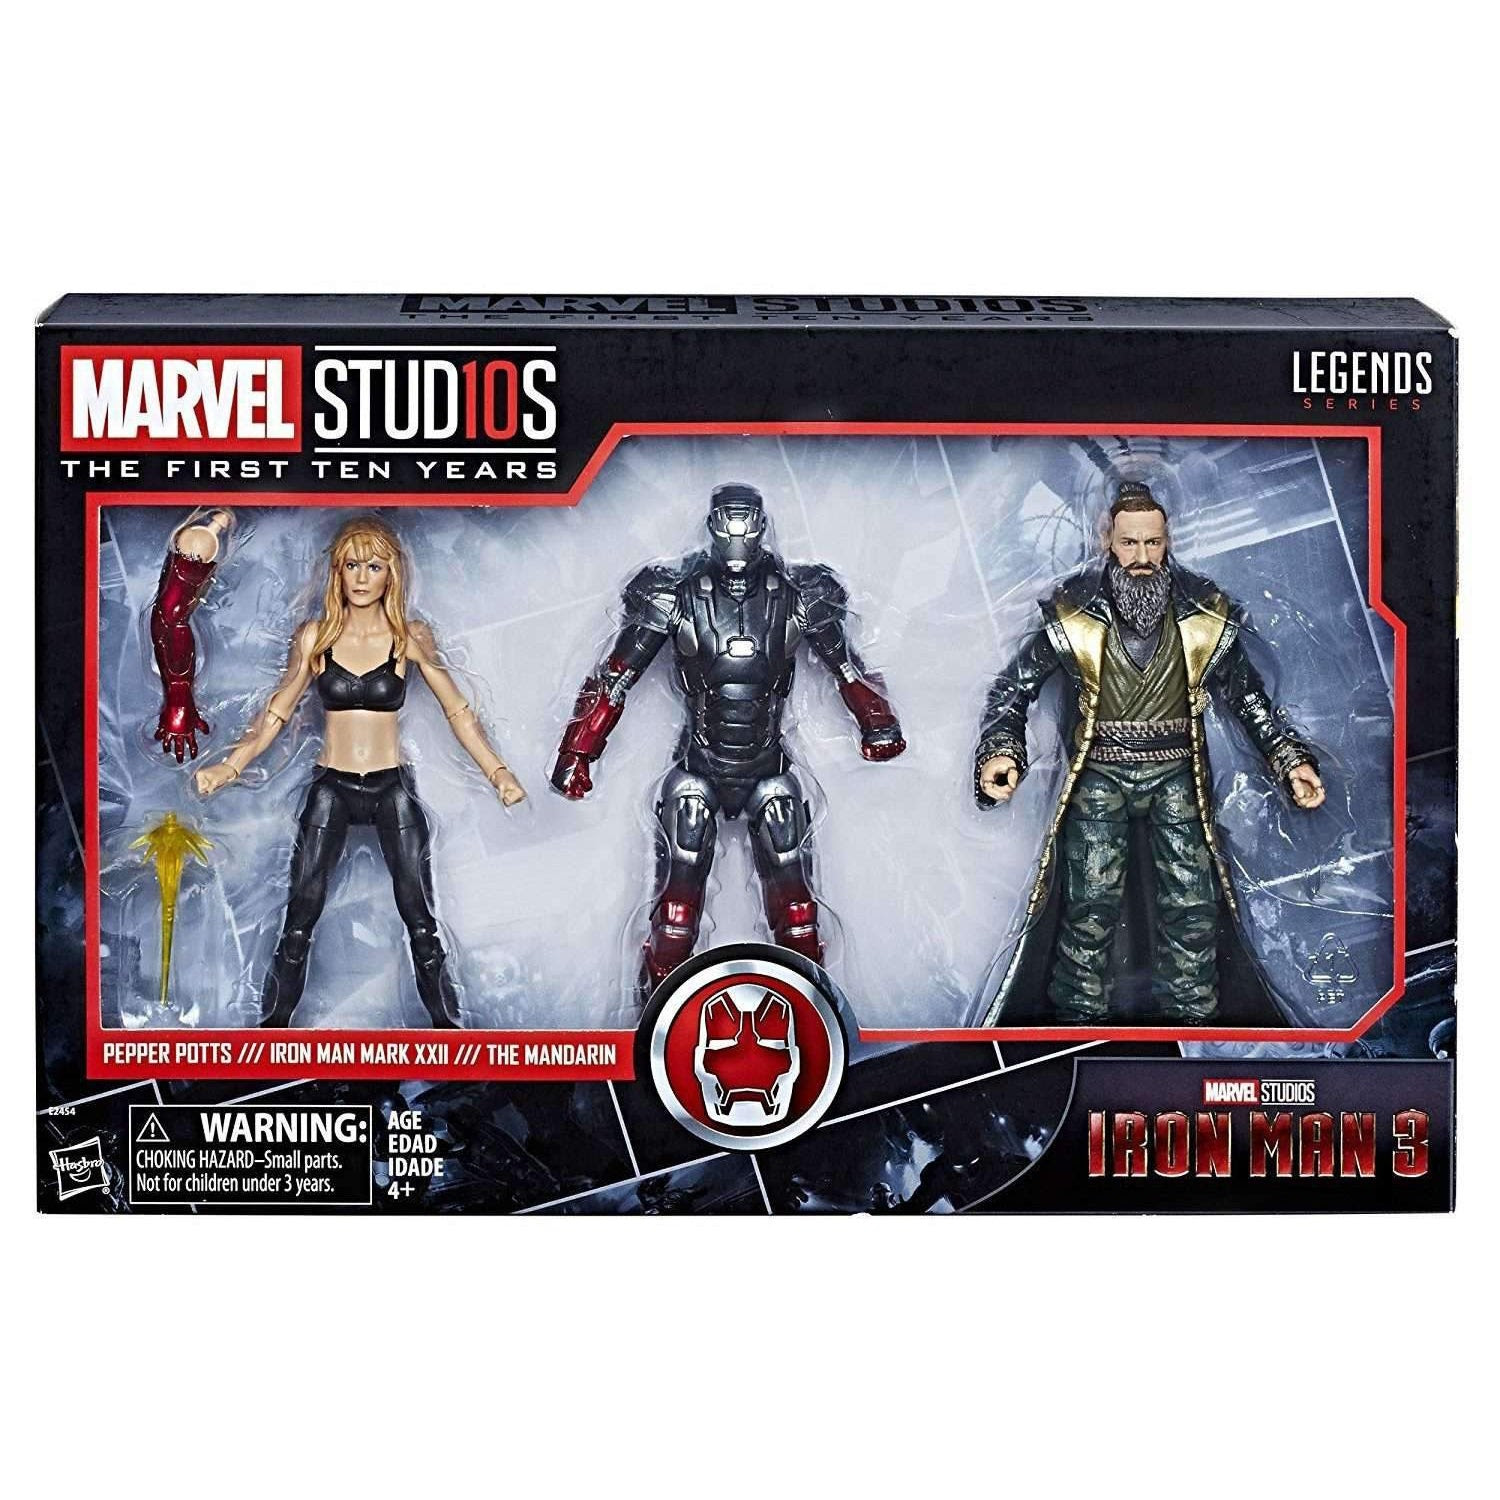 Image of Marvel Studios: The First Ten Years Marvel Legends - Iron Man 3: Pepper Potts, Iron Man, and Mandarin - APRIL 2019